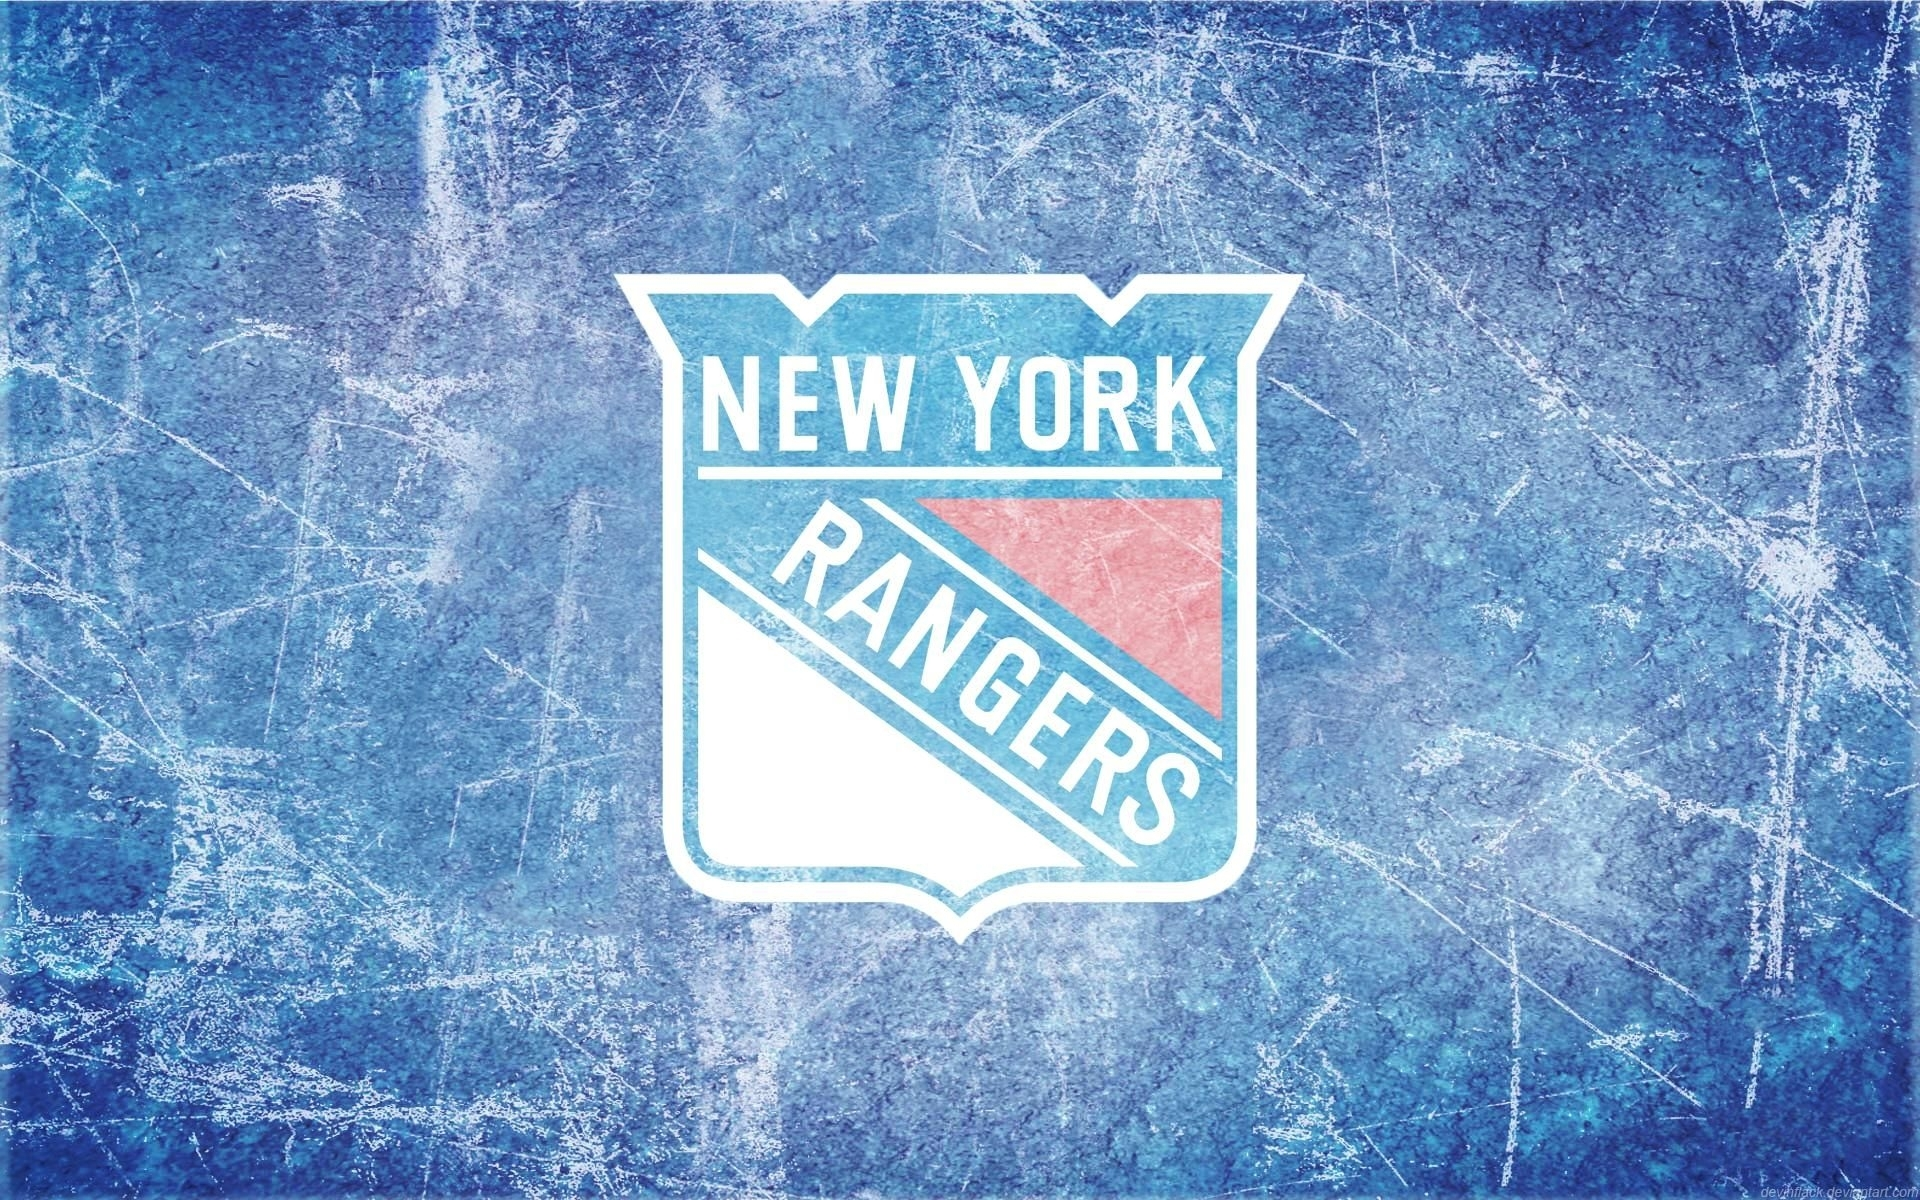 ny rangers backgrounds wallpaper | hd wallpapers | pinterest | wallpaper